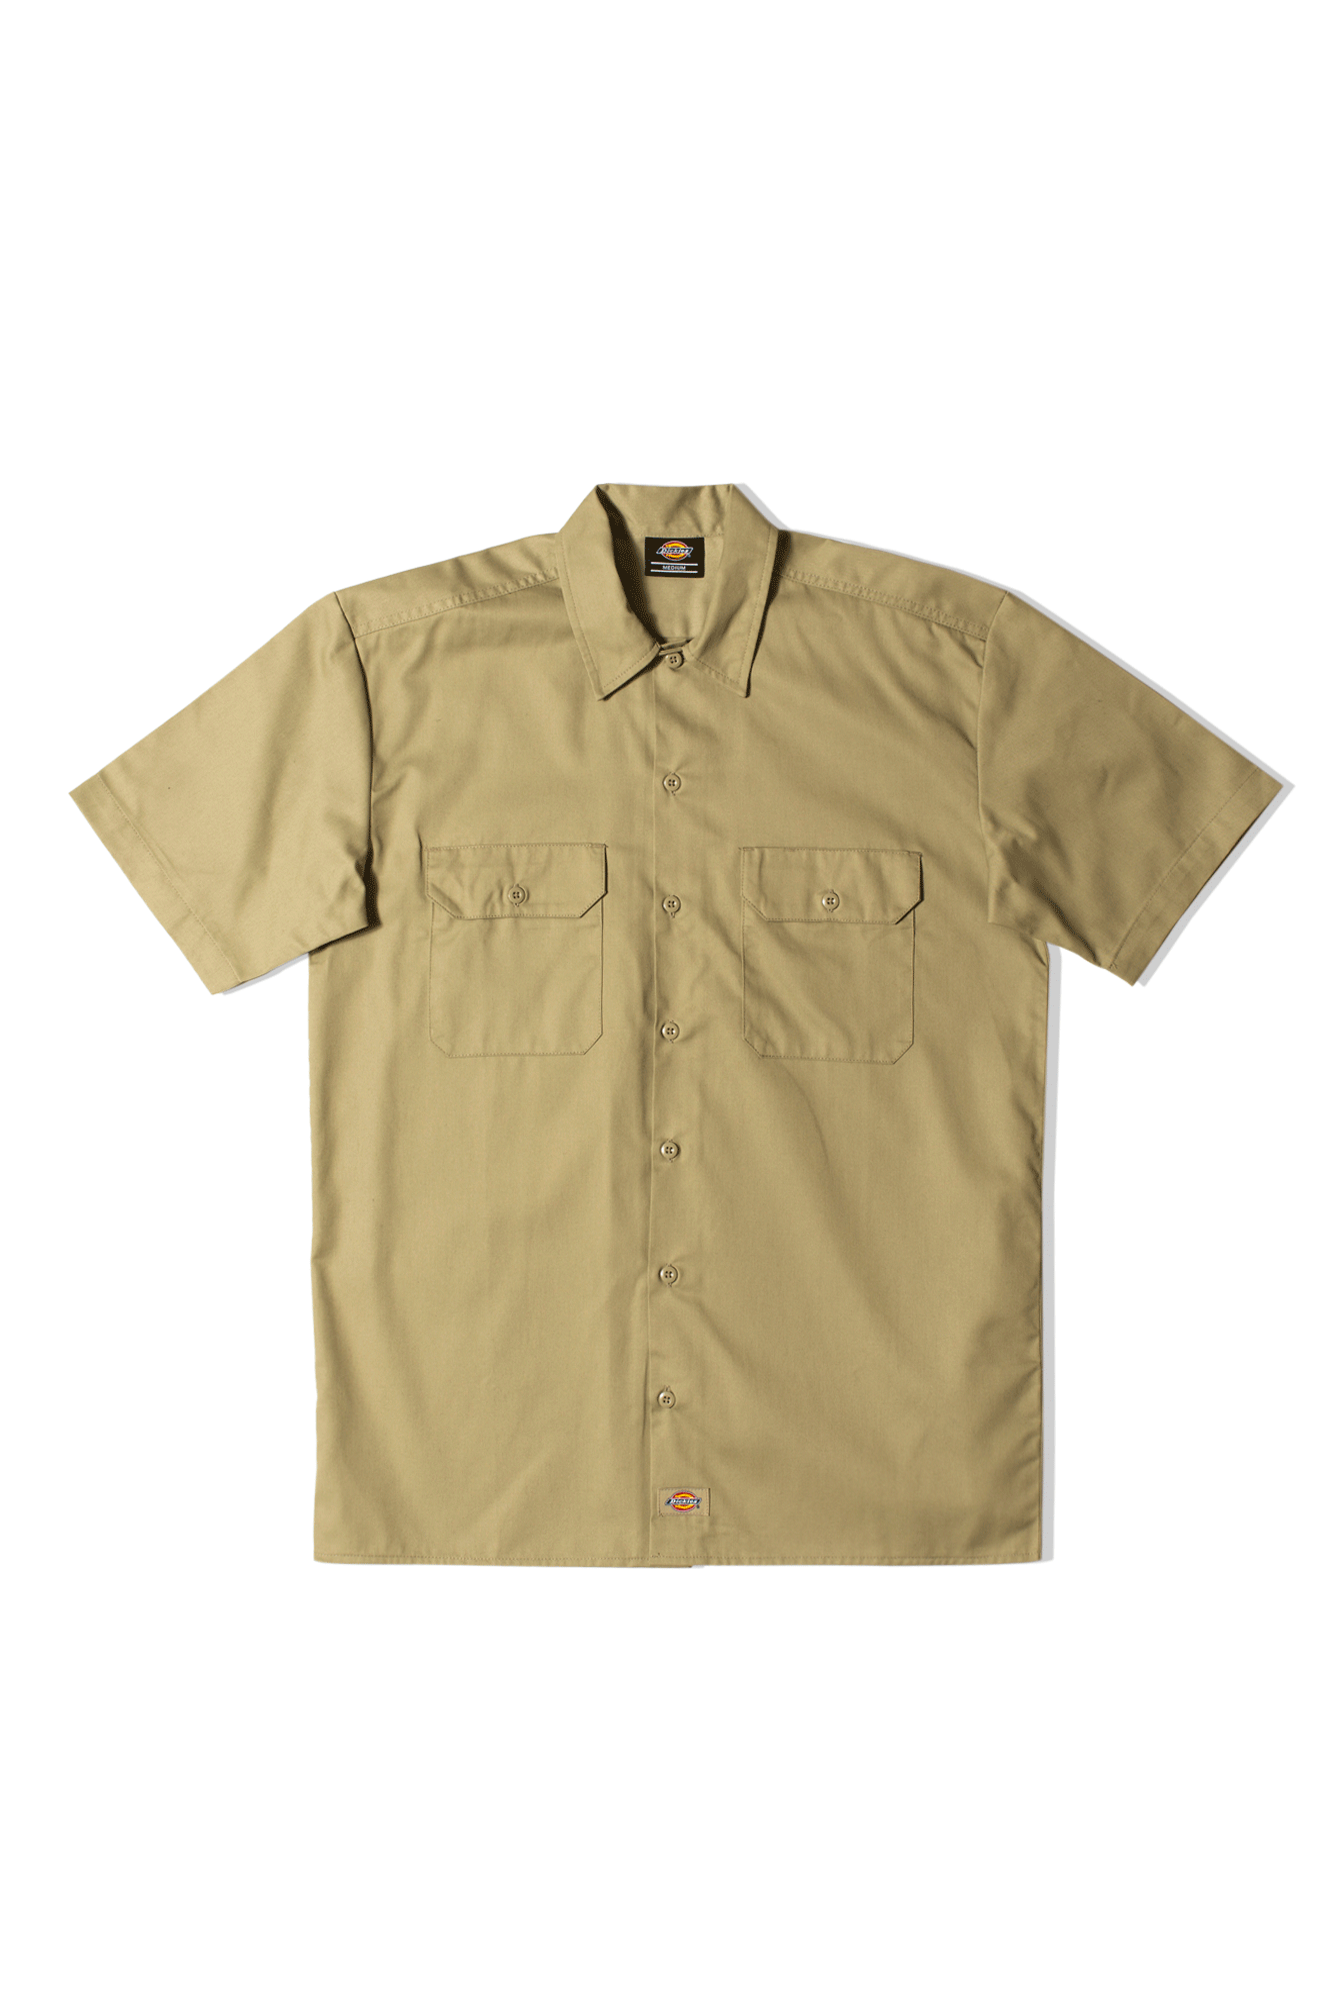 ShortSleeve Work Shirt